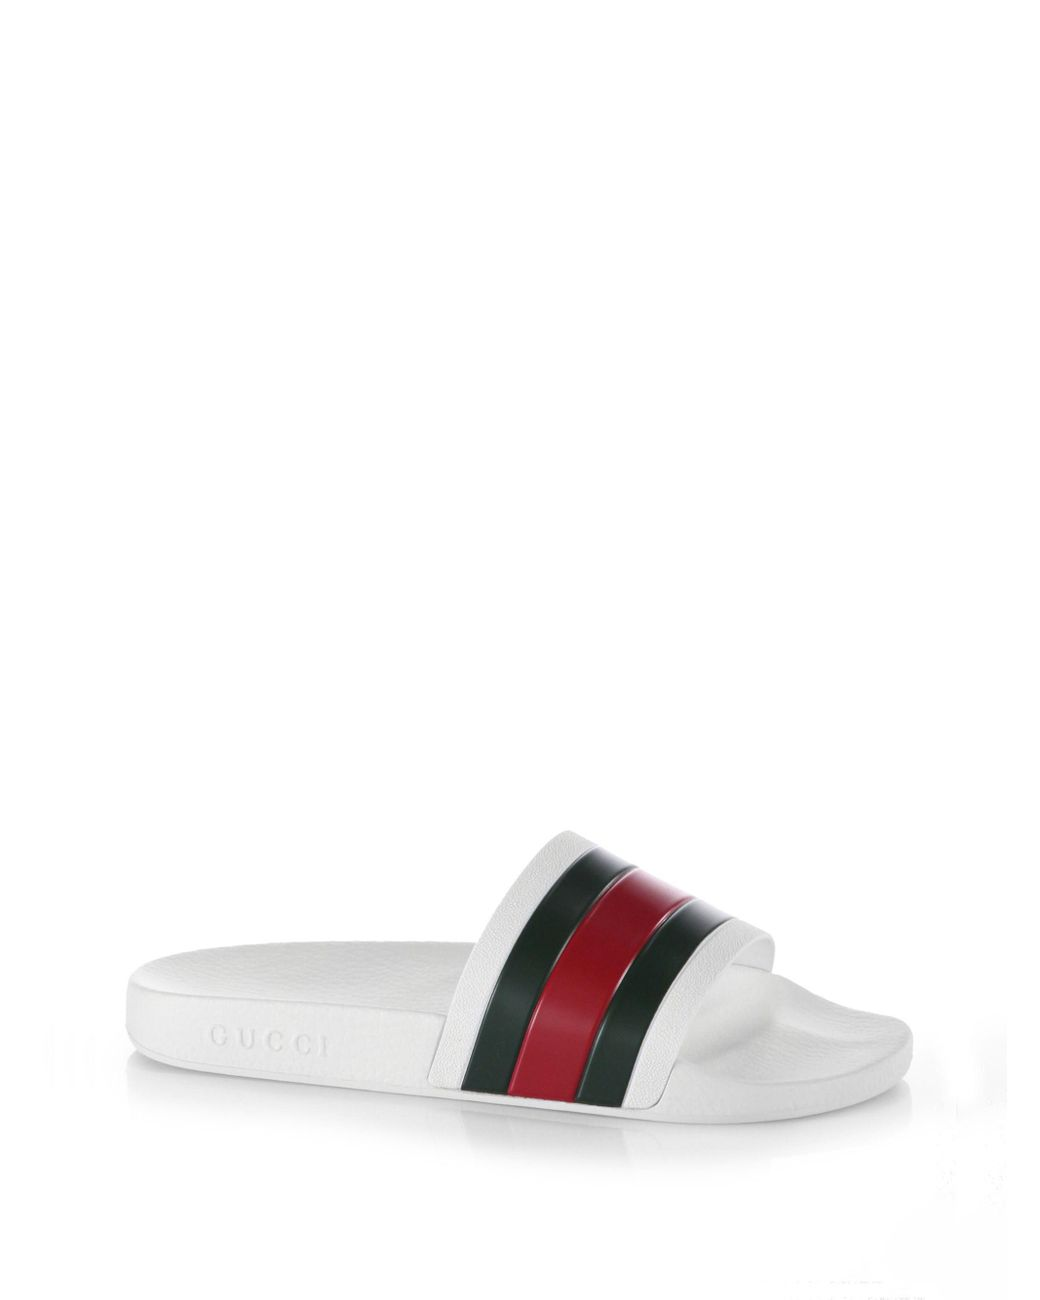 b3f1d7b909e Gucci White Pursuit Slides in White for Men - Save 17% - Lyst